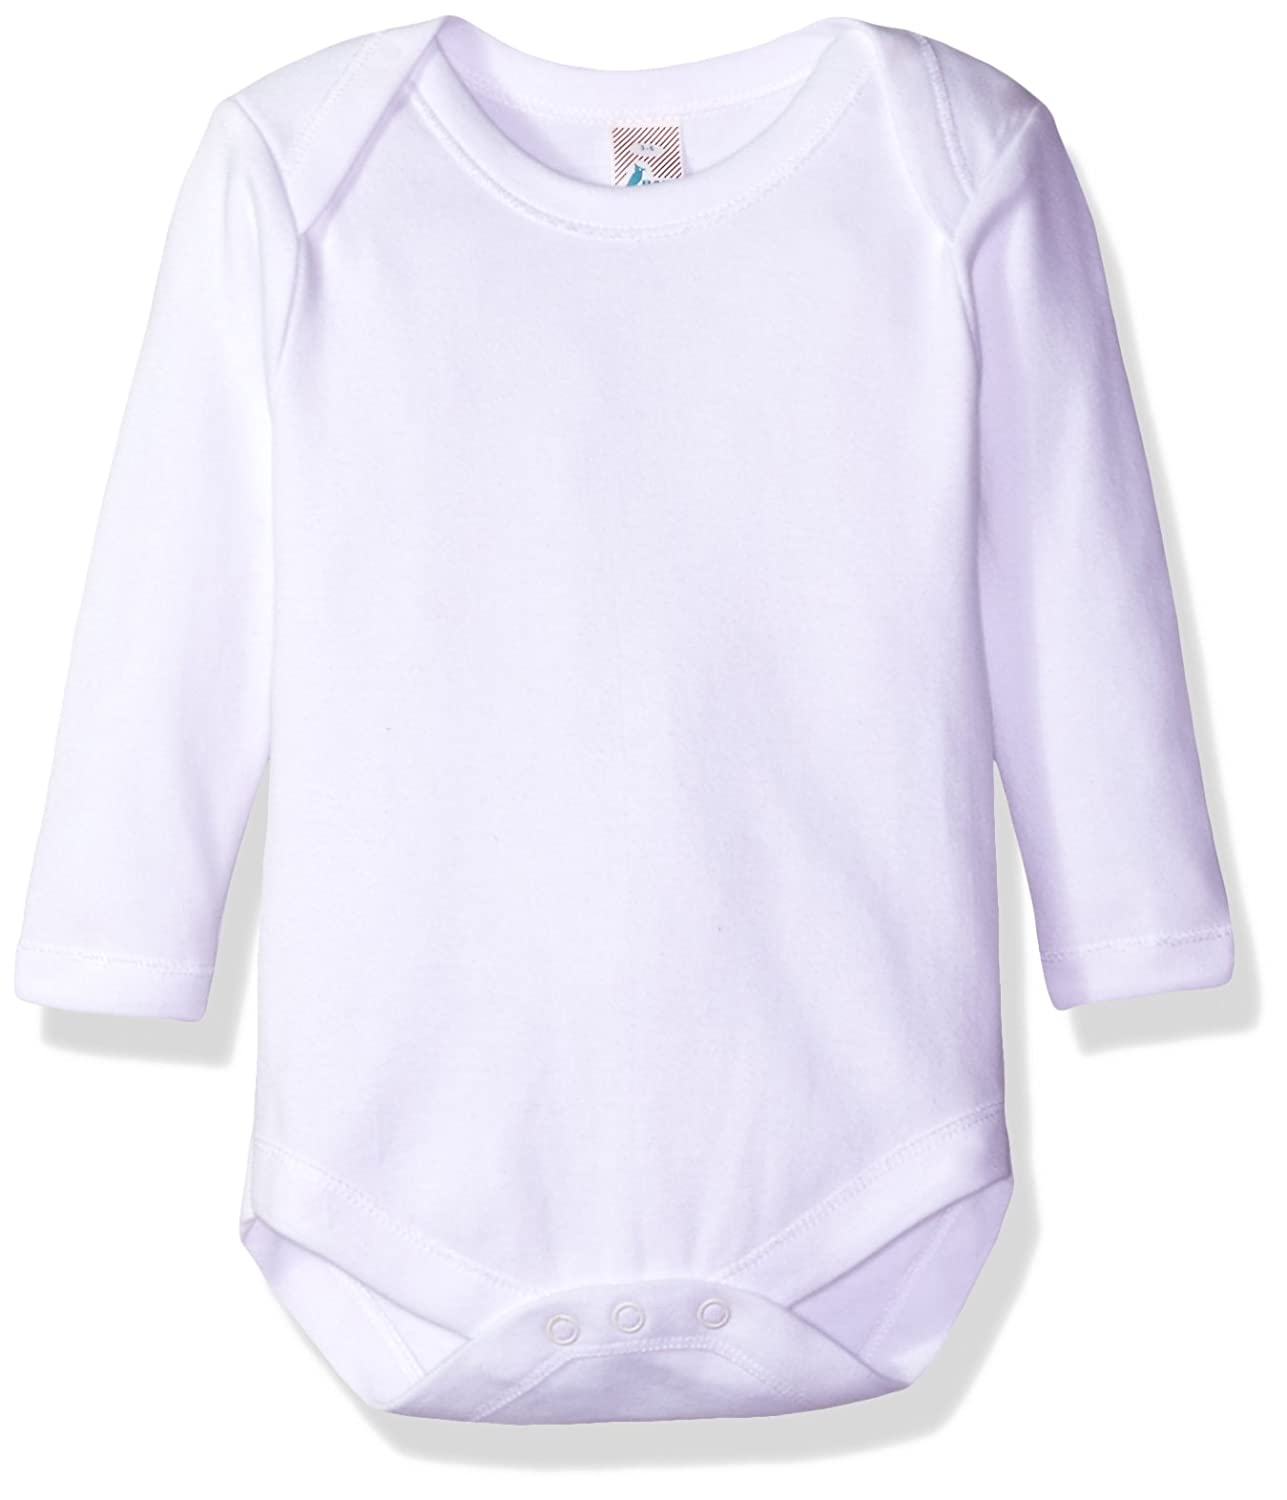 19e7d0d60 Amazon.com: Soft Cotton Onesies, Long Sleeve Unisex Bodysuit, WSLR 3-6  1-Pack: Clothing